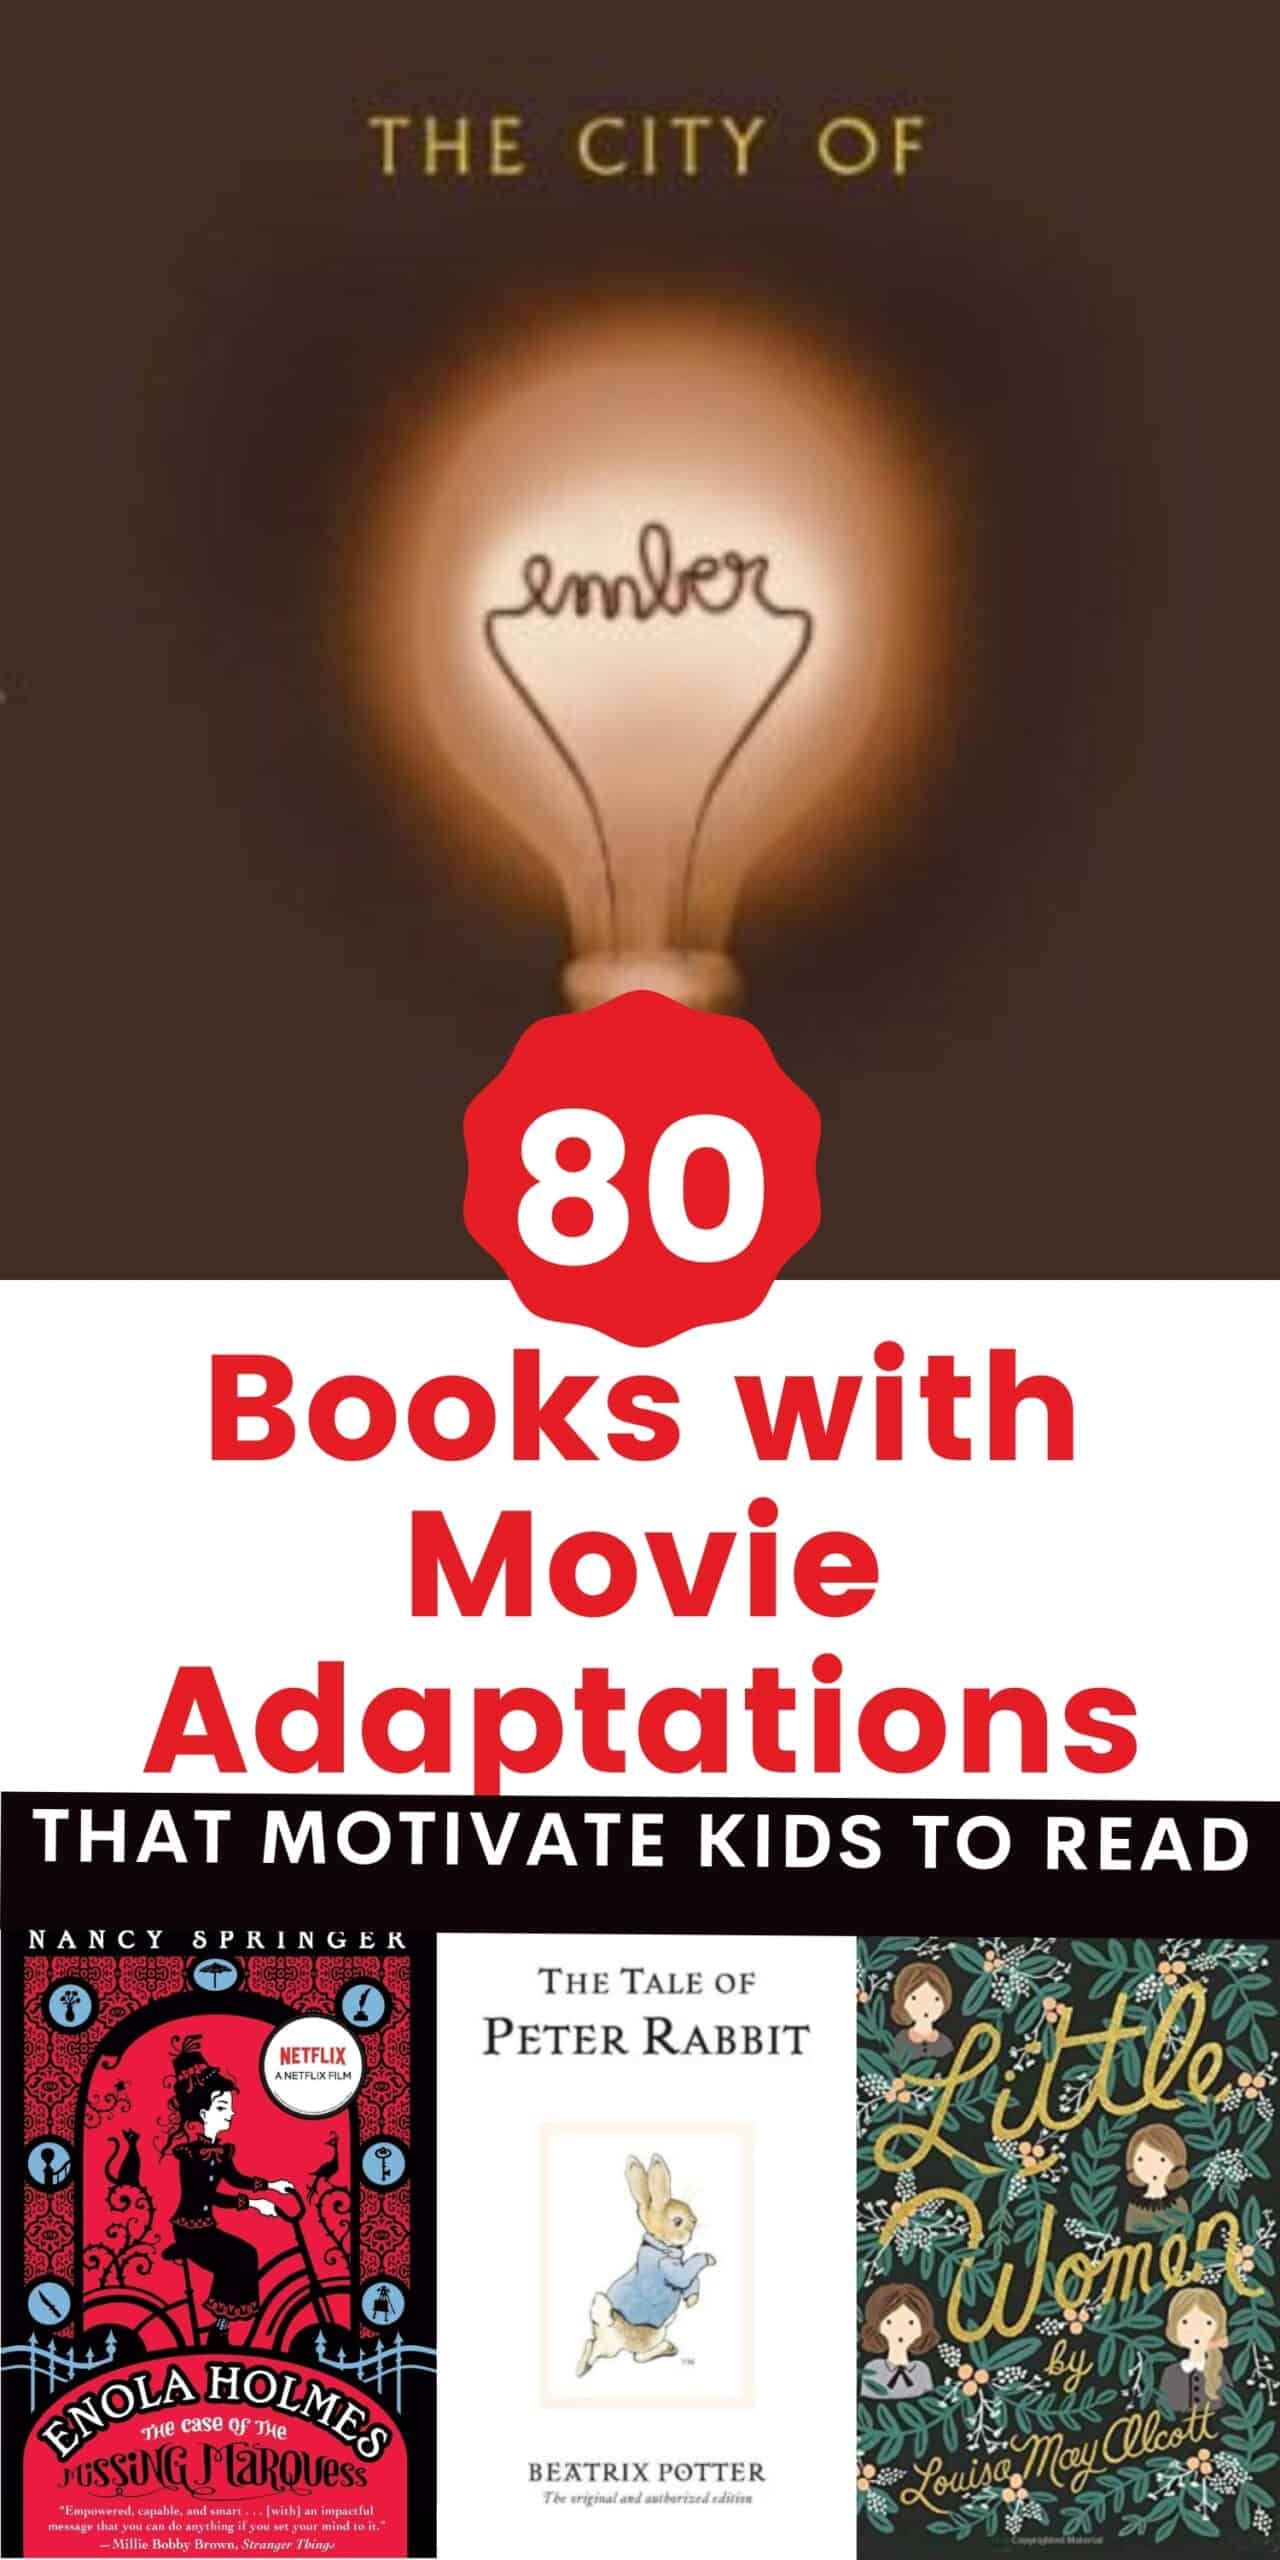 huge list of children's books with movie adaptations